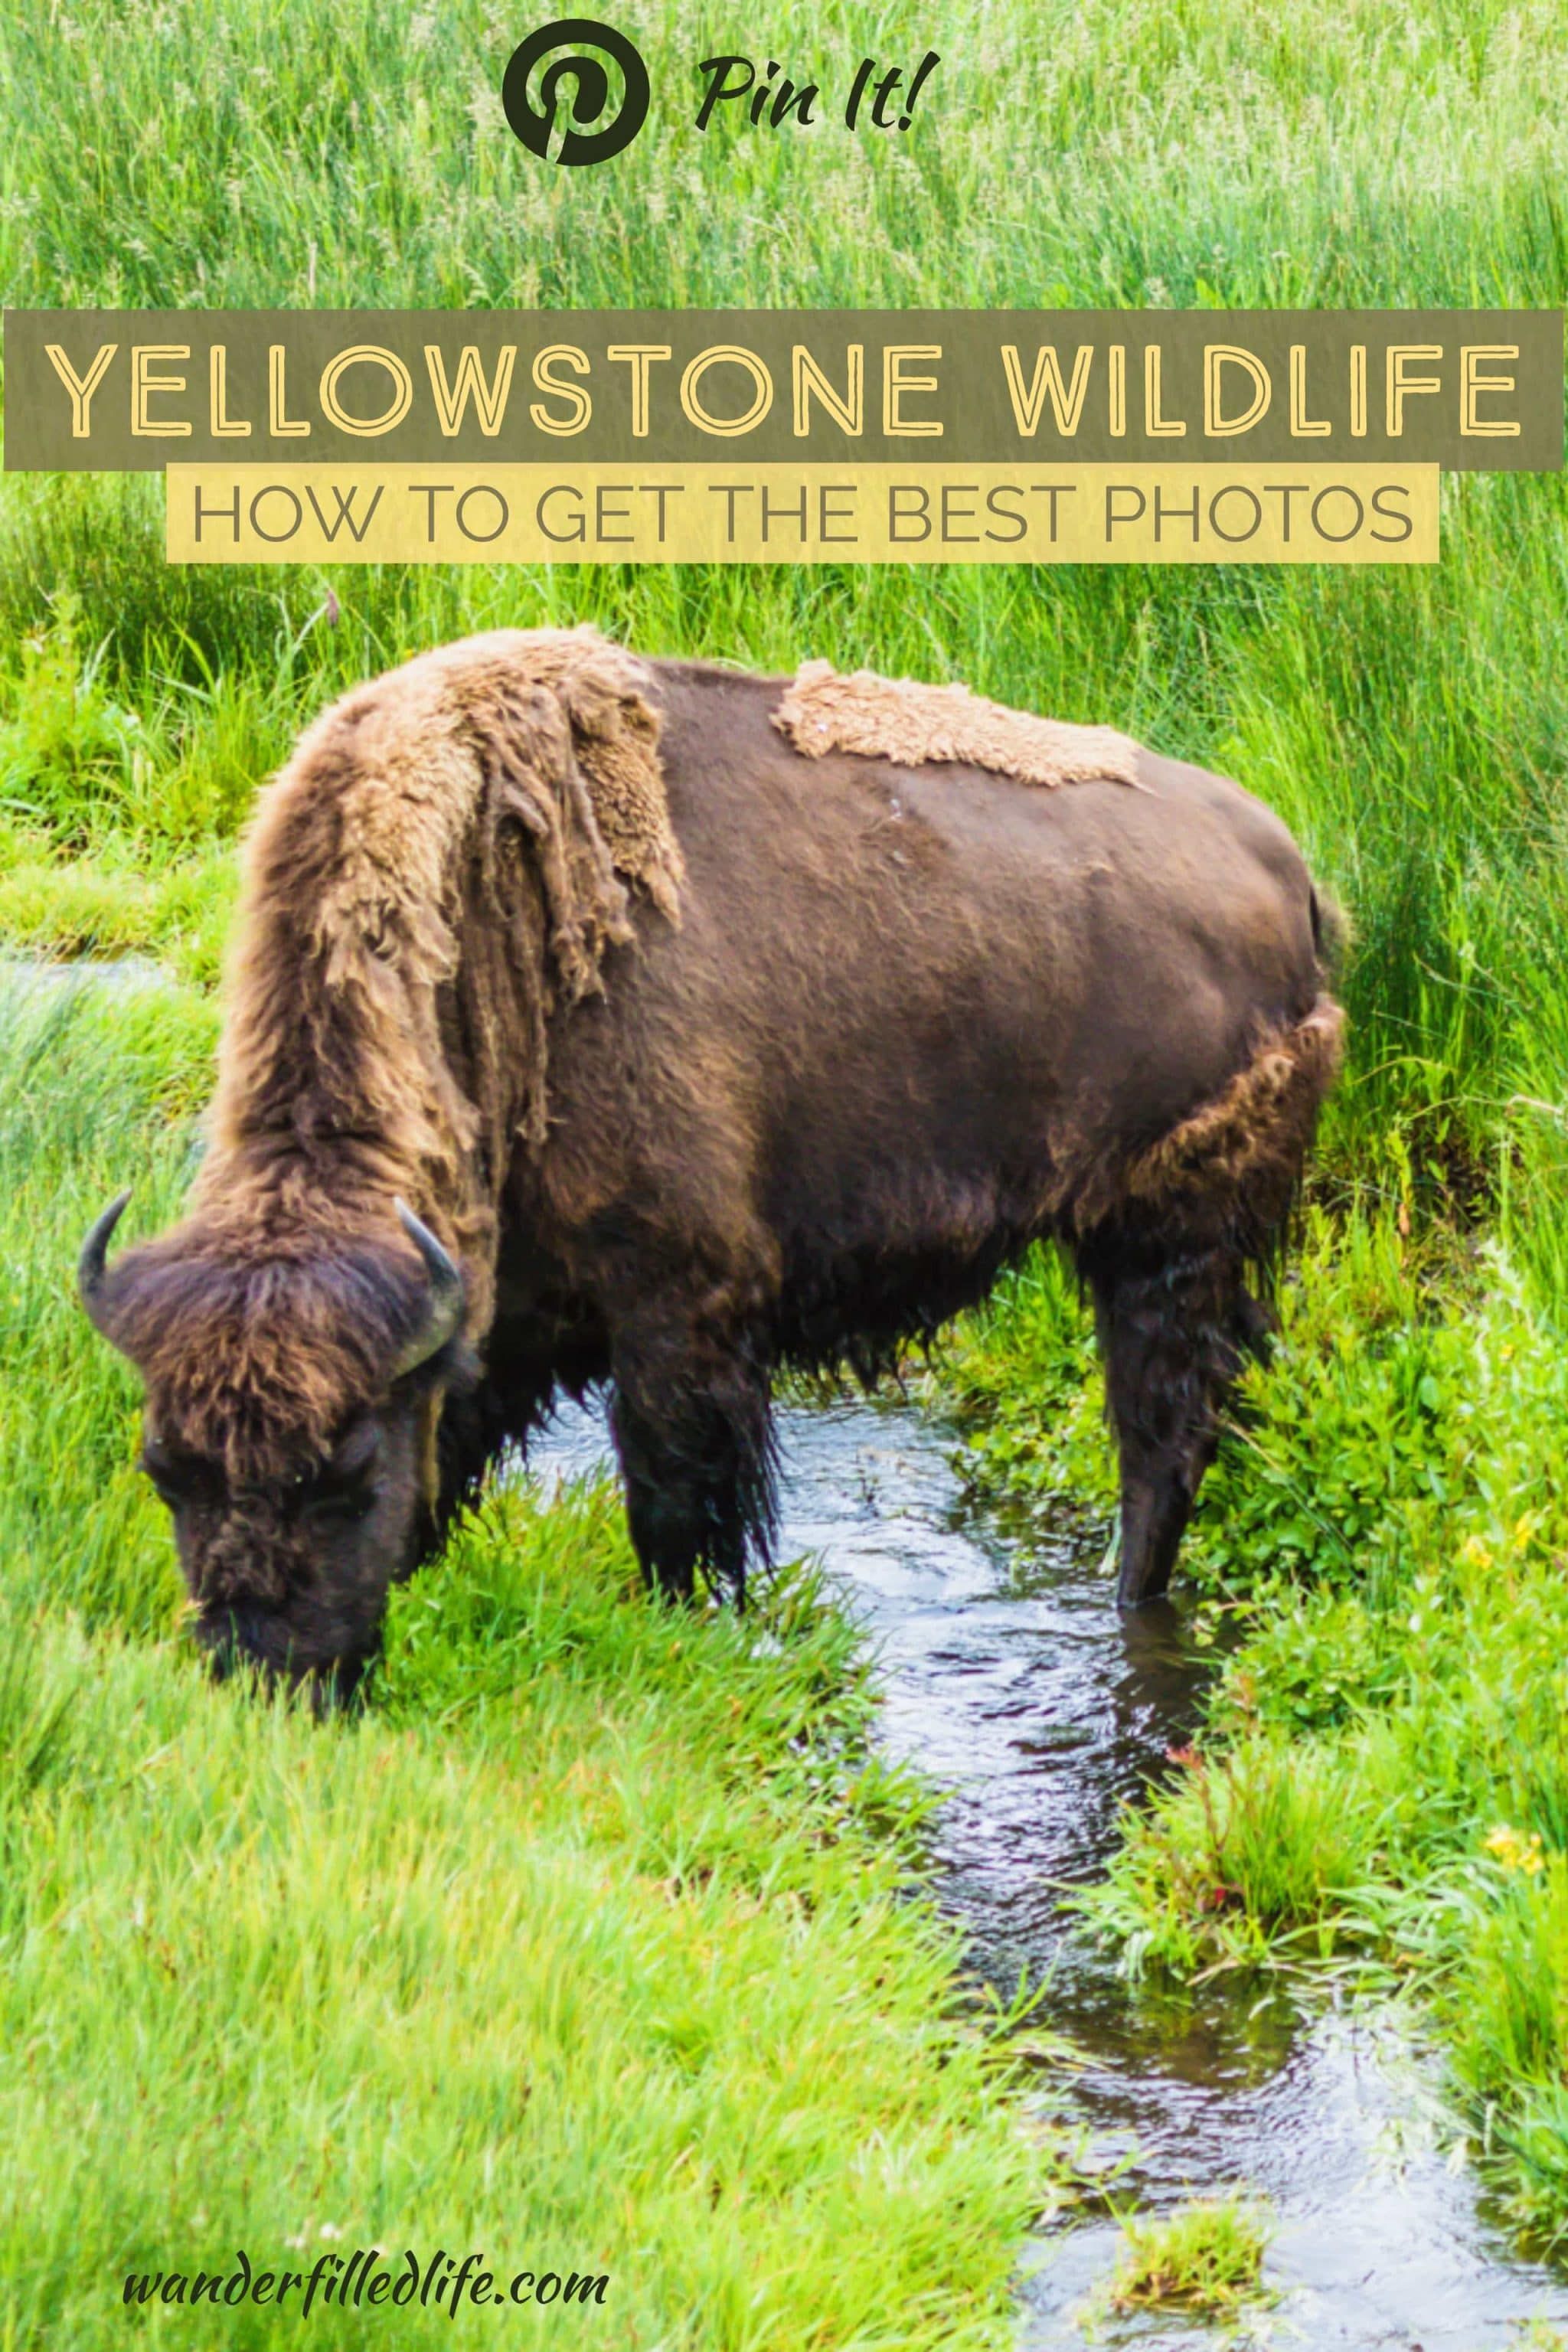 Finding Yellowstone wildlife can be a challenge unless you know where and, more importantly, when to look to spot your favorite critters.